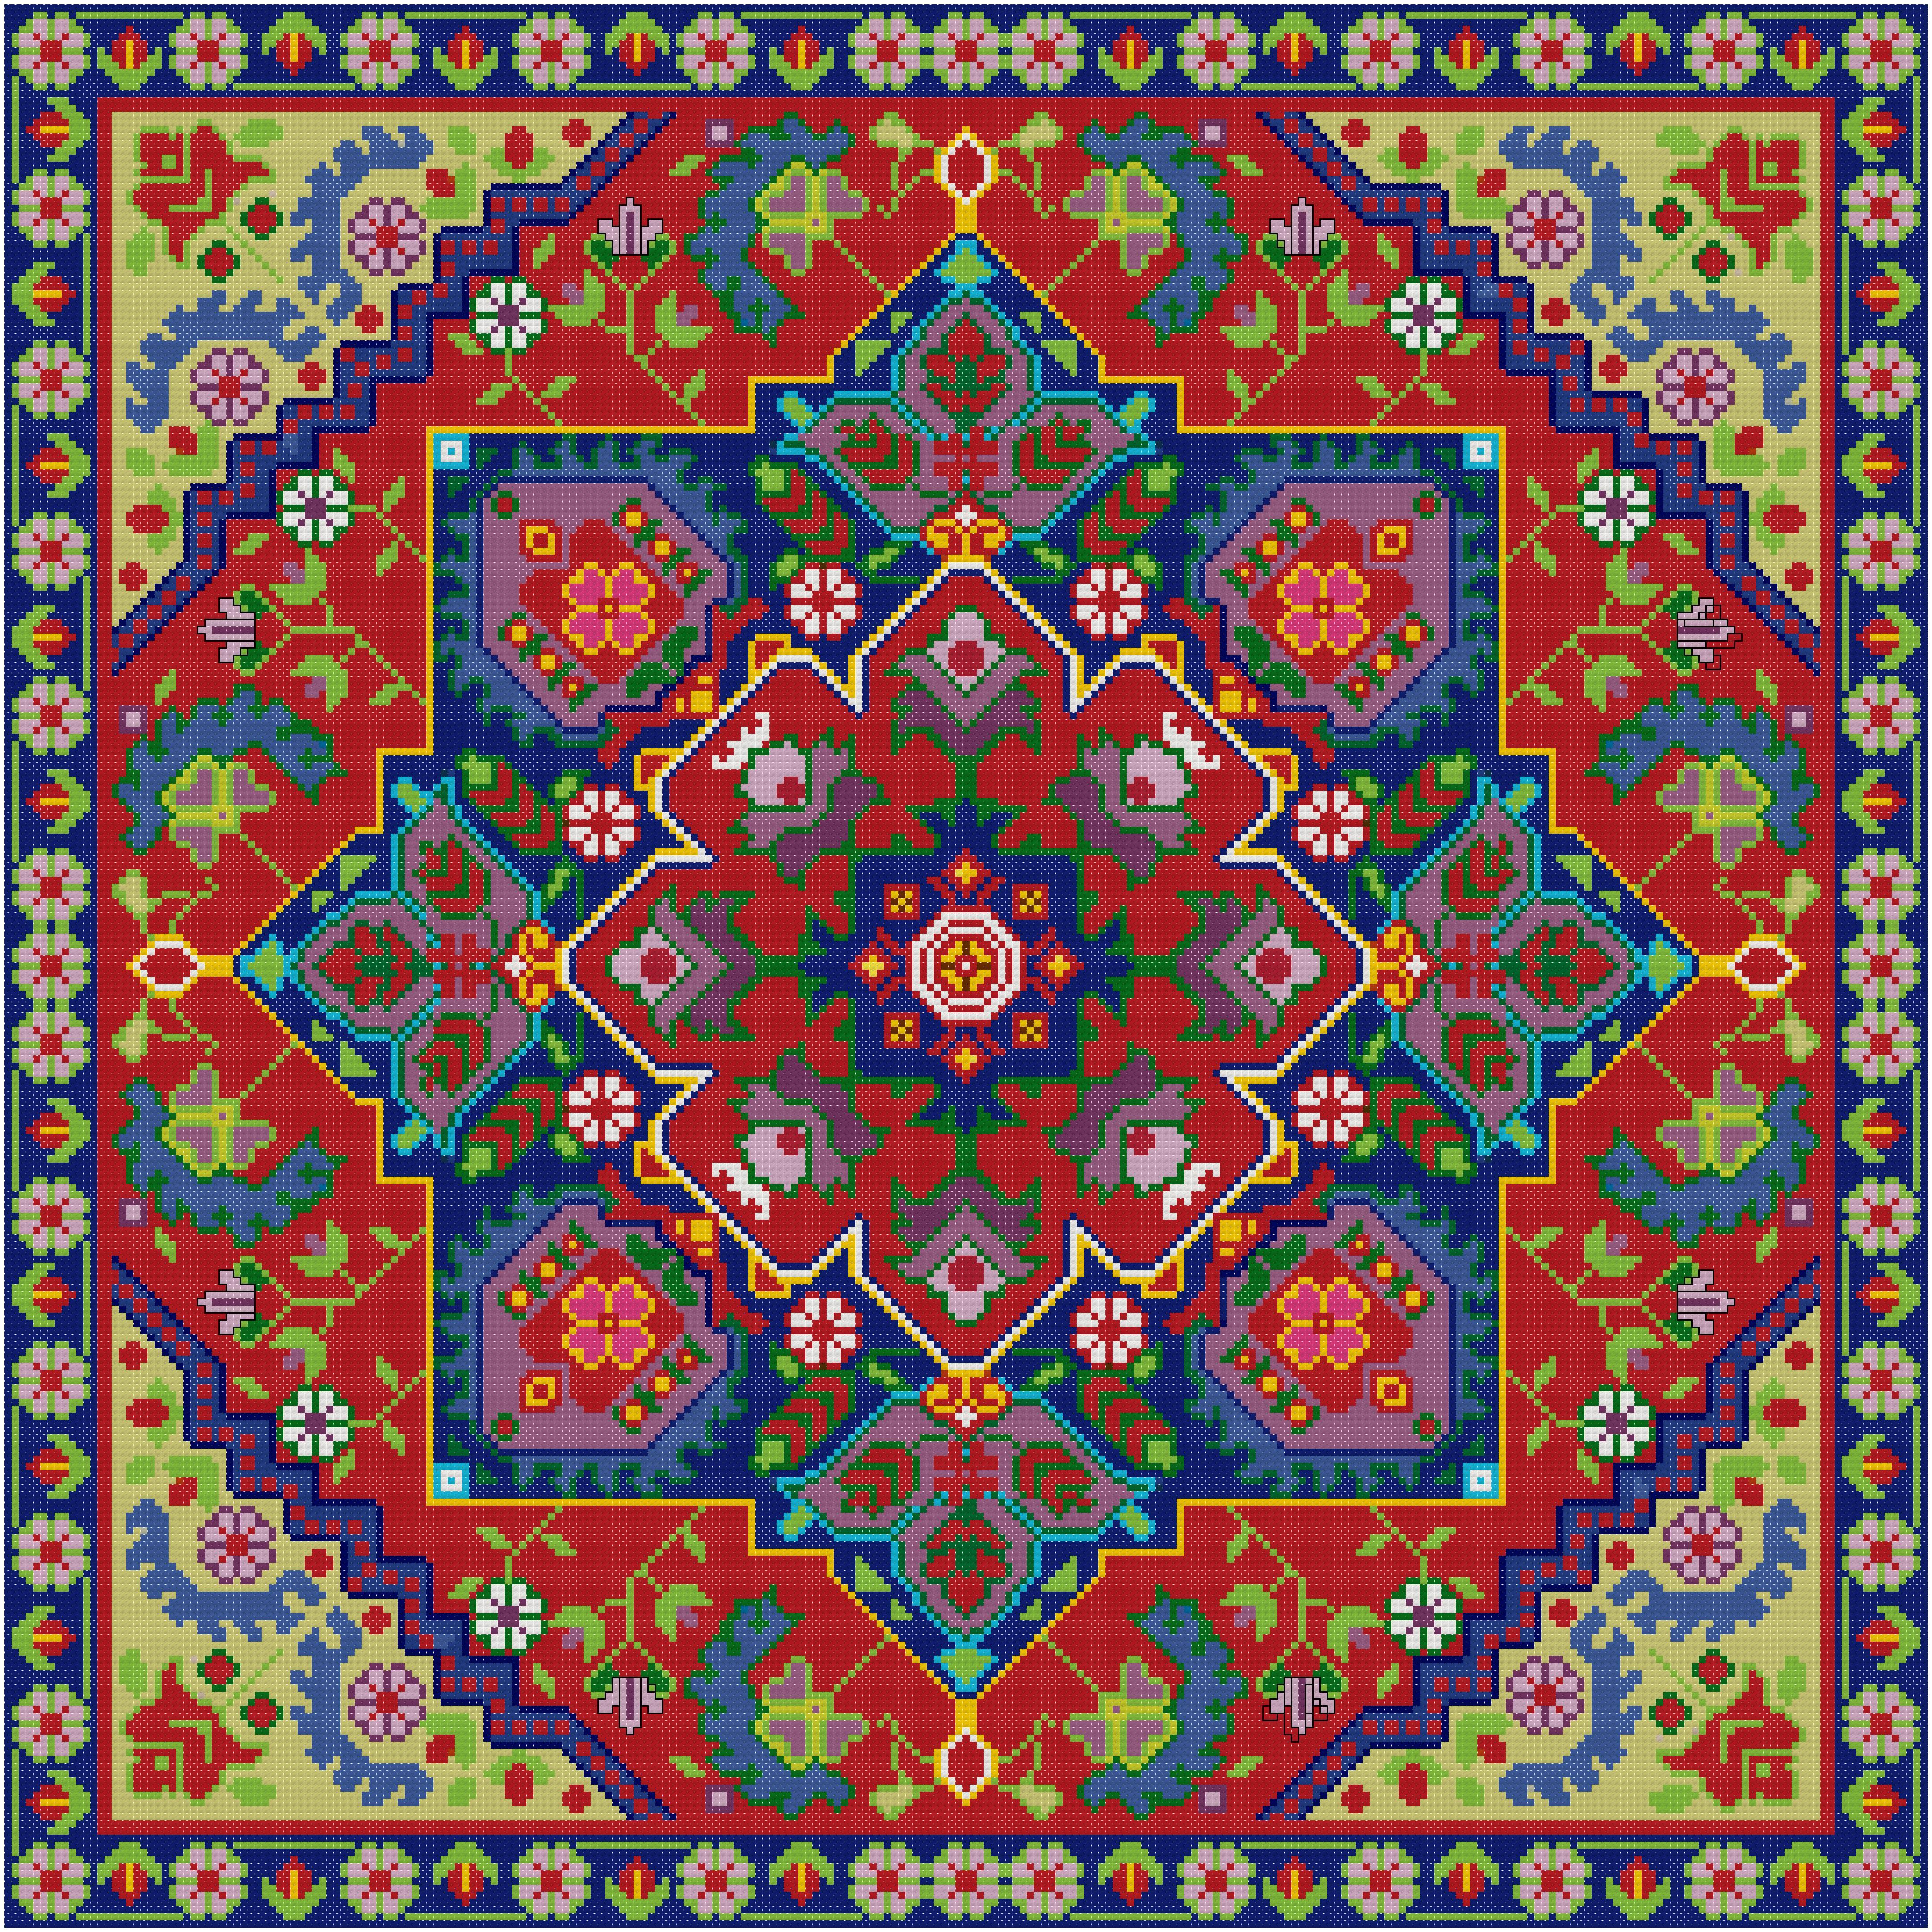 This Cross Stitch Pattern Features A Design Taken From A Vintage Persian Rug Cross Stitch Cross Stitch Patterns Cross Stitch Designs